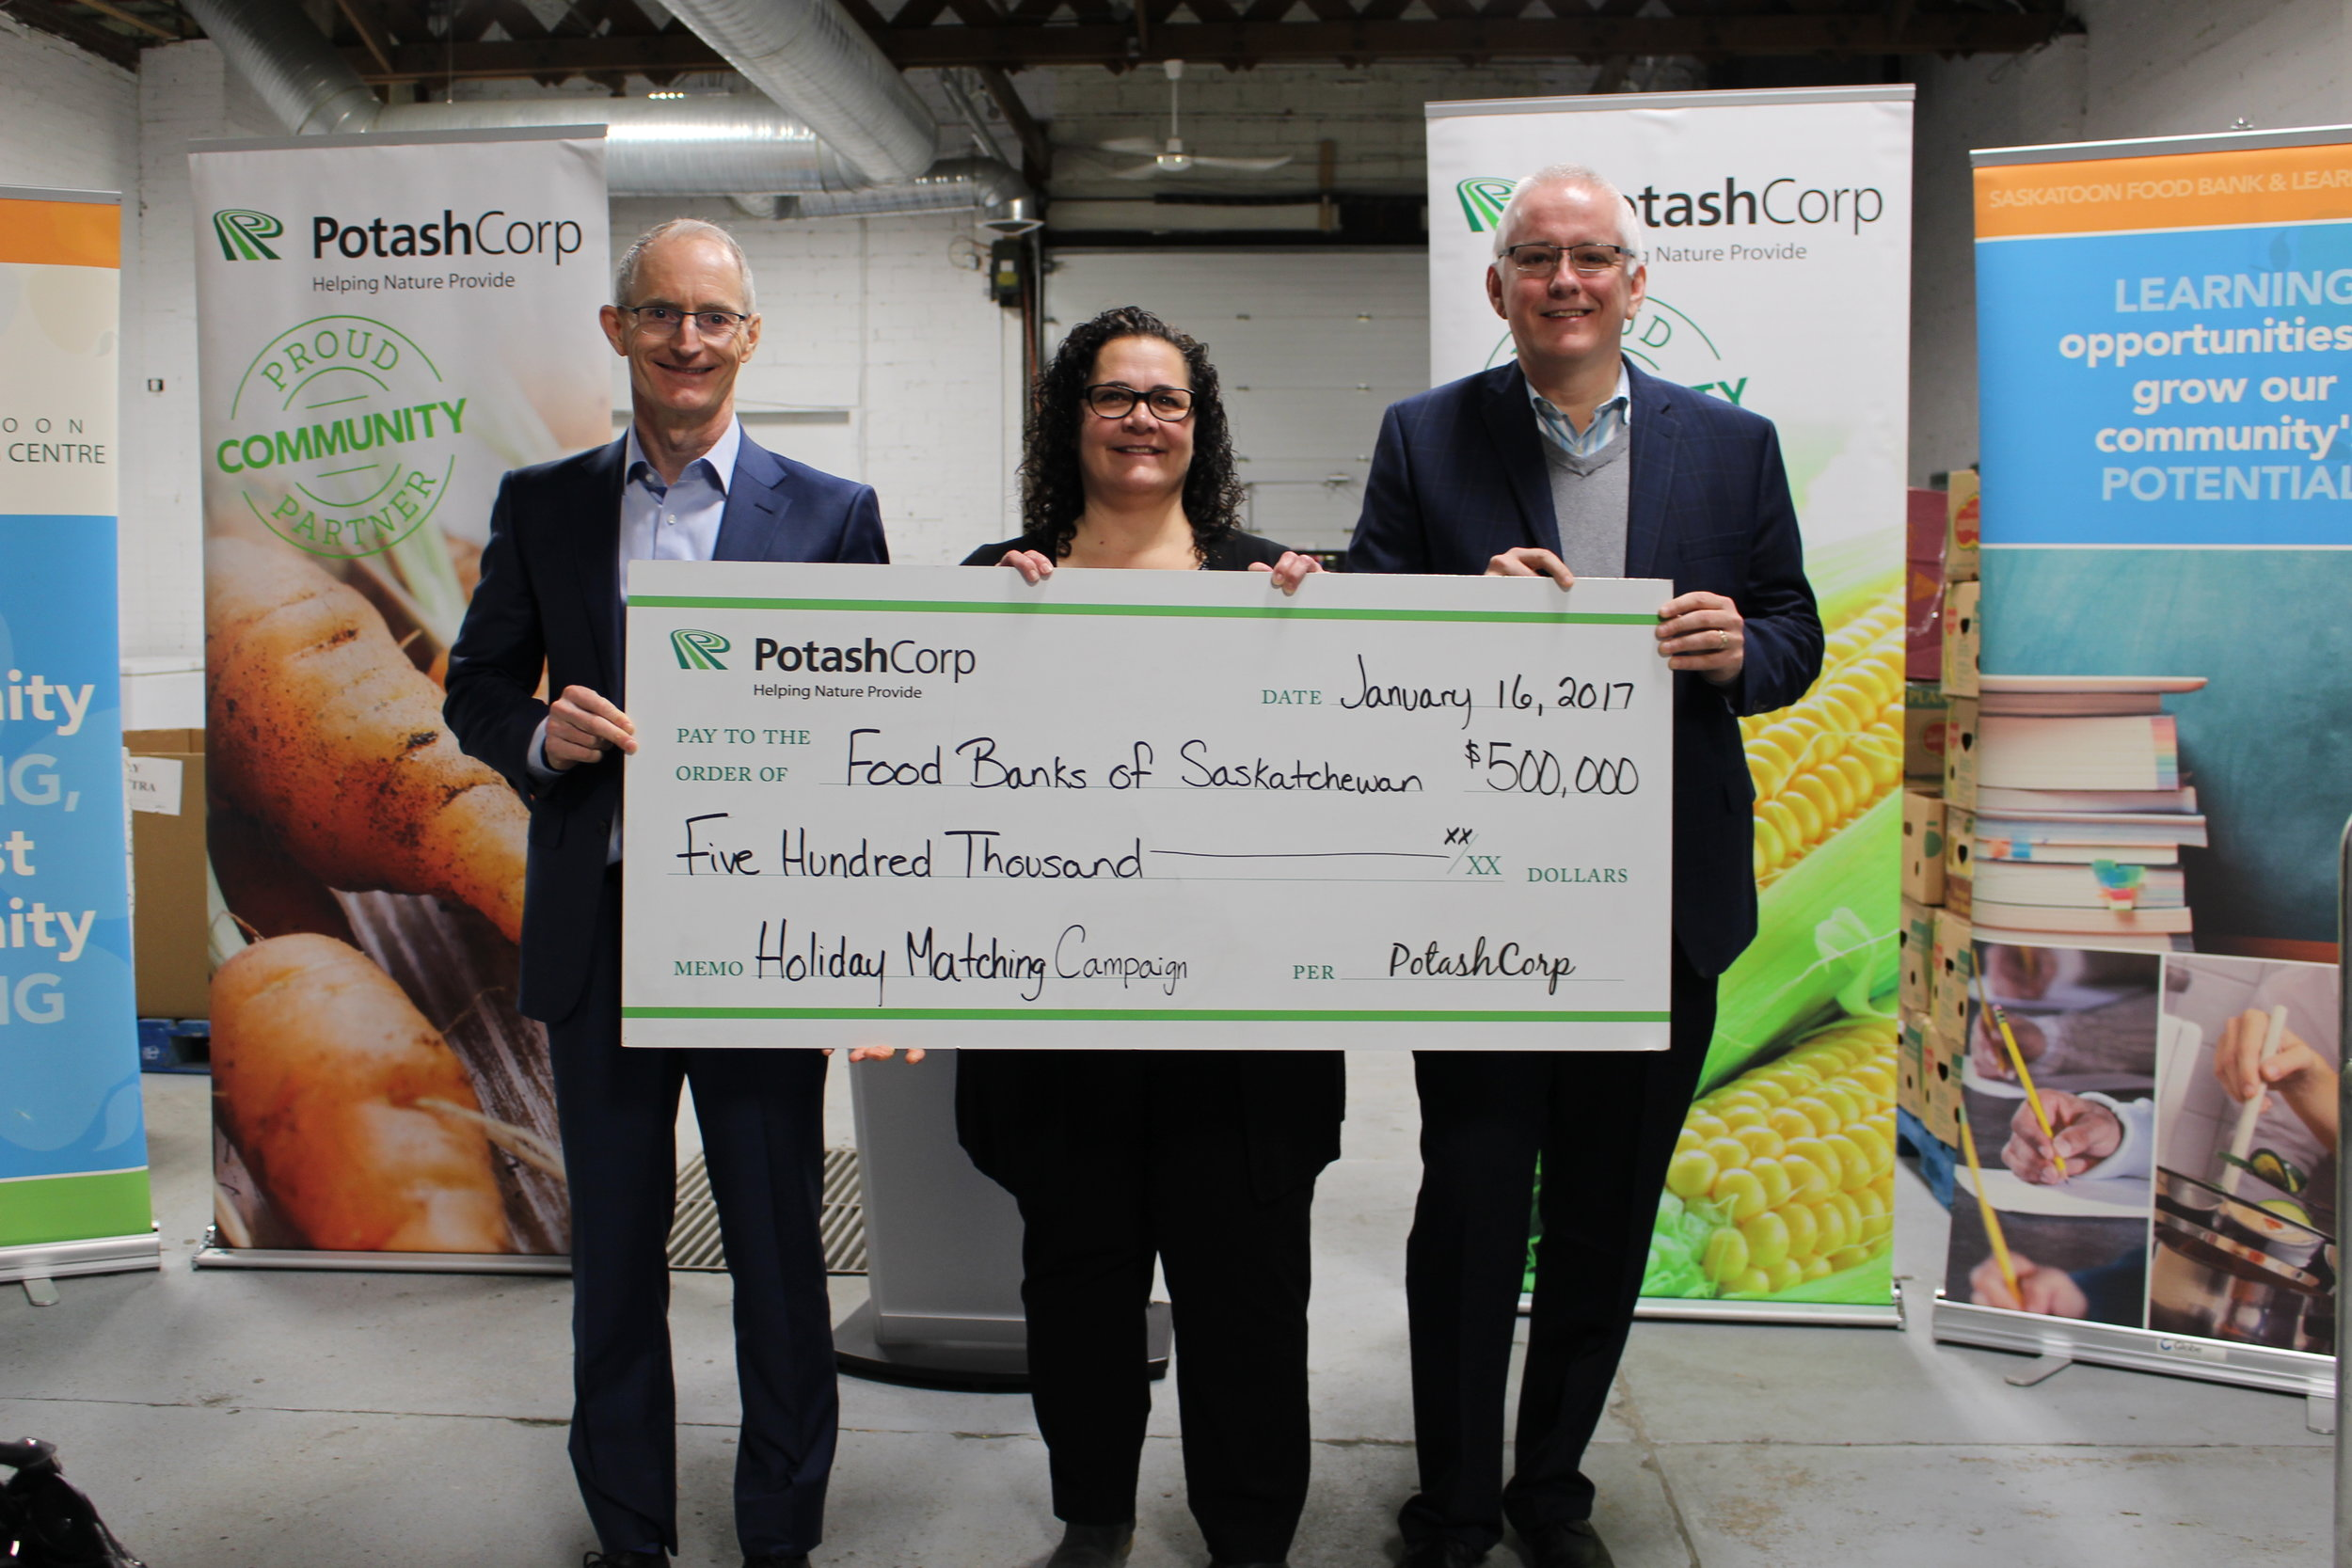 (Left to right) Jochen Tilk  President and CEO of Potash Corp , Laurie O'Connor  Executive Director of SFBLC  and Steve Compton  Executive Director of Food Banks of Saskatchewan.